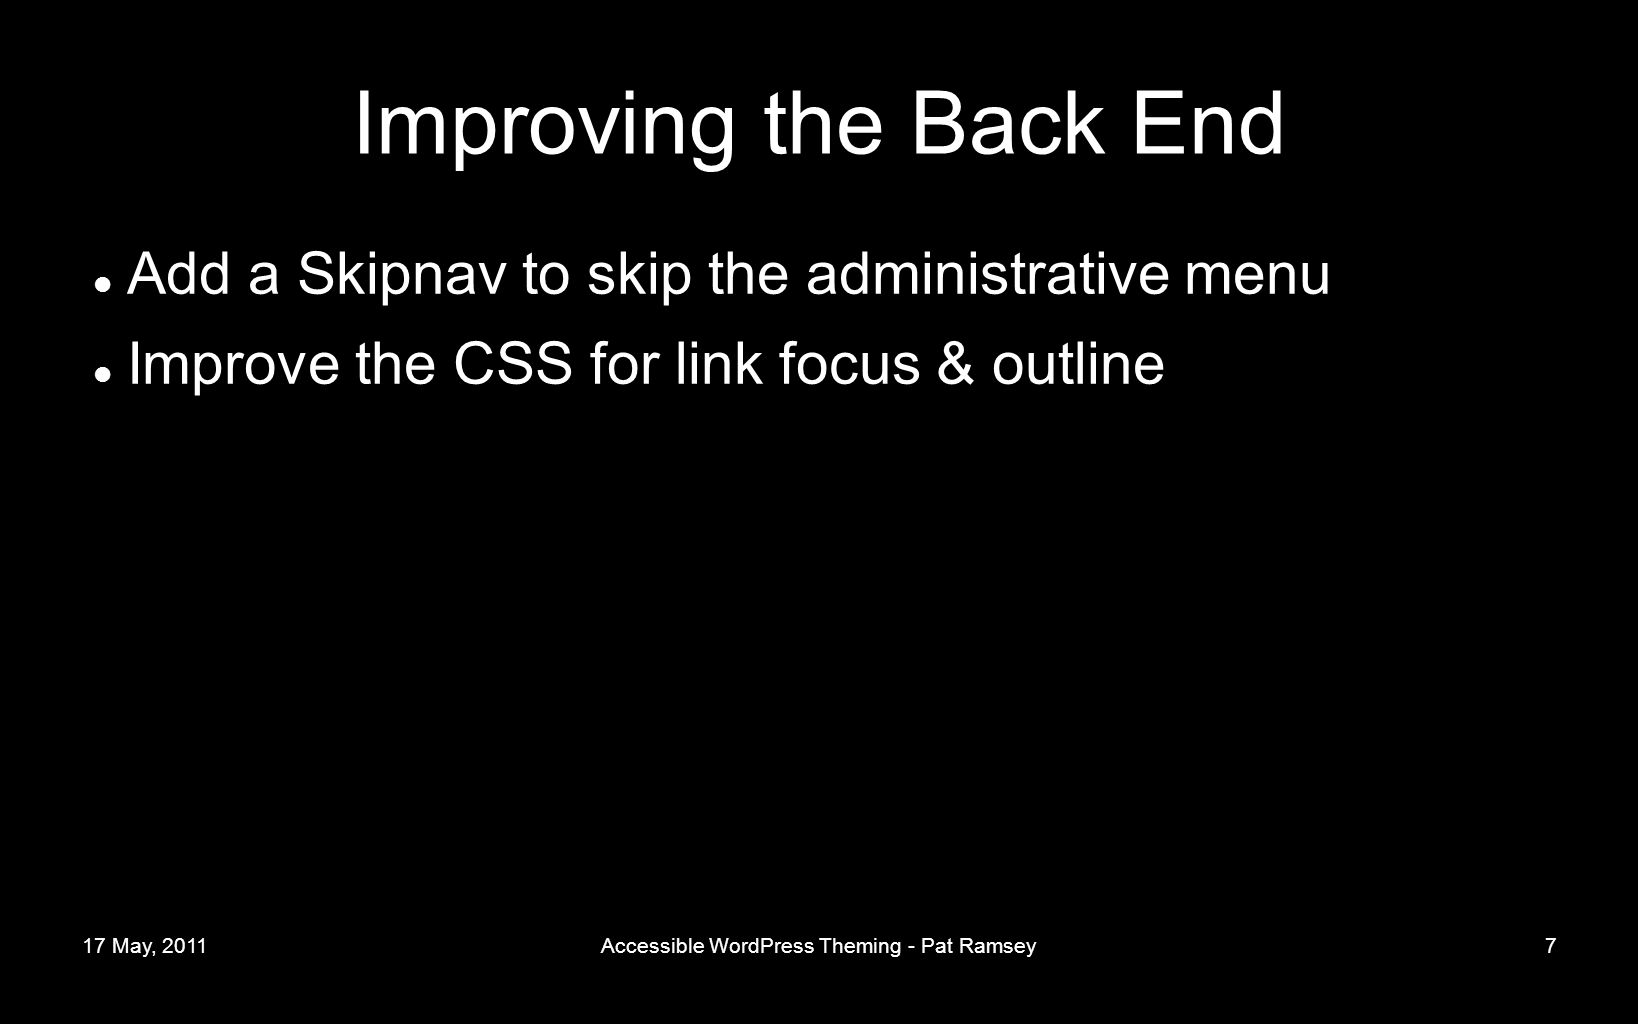 17 May, 2011Accessible WordPress Theming - Pat Ramsey7 Improving the Back End Add a Skipnav to skip the administrative menu Improve the CSS for link focus & outline